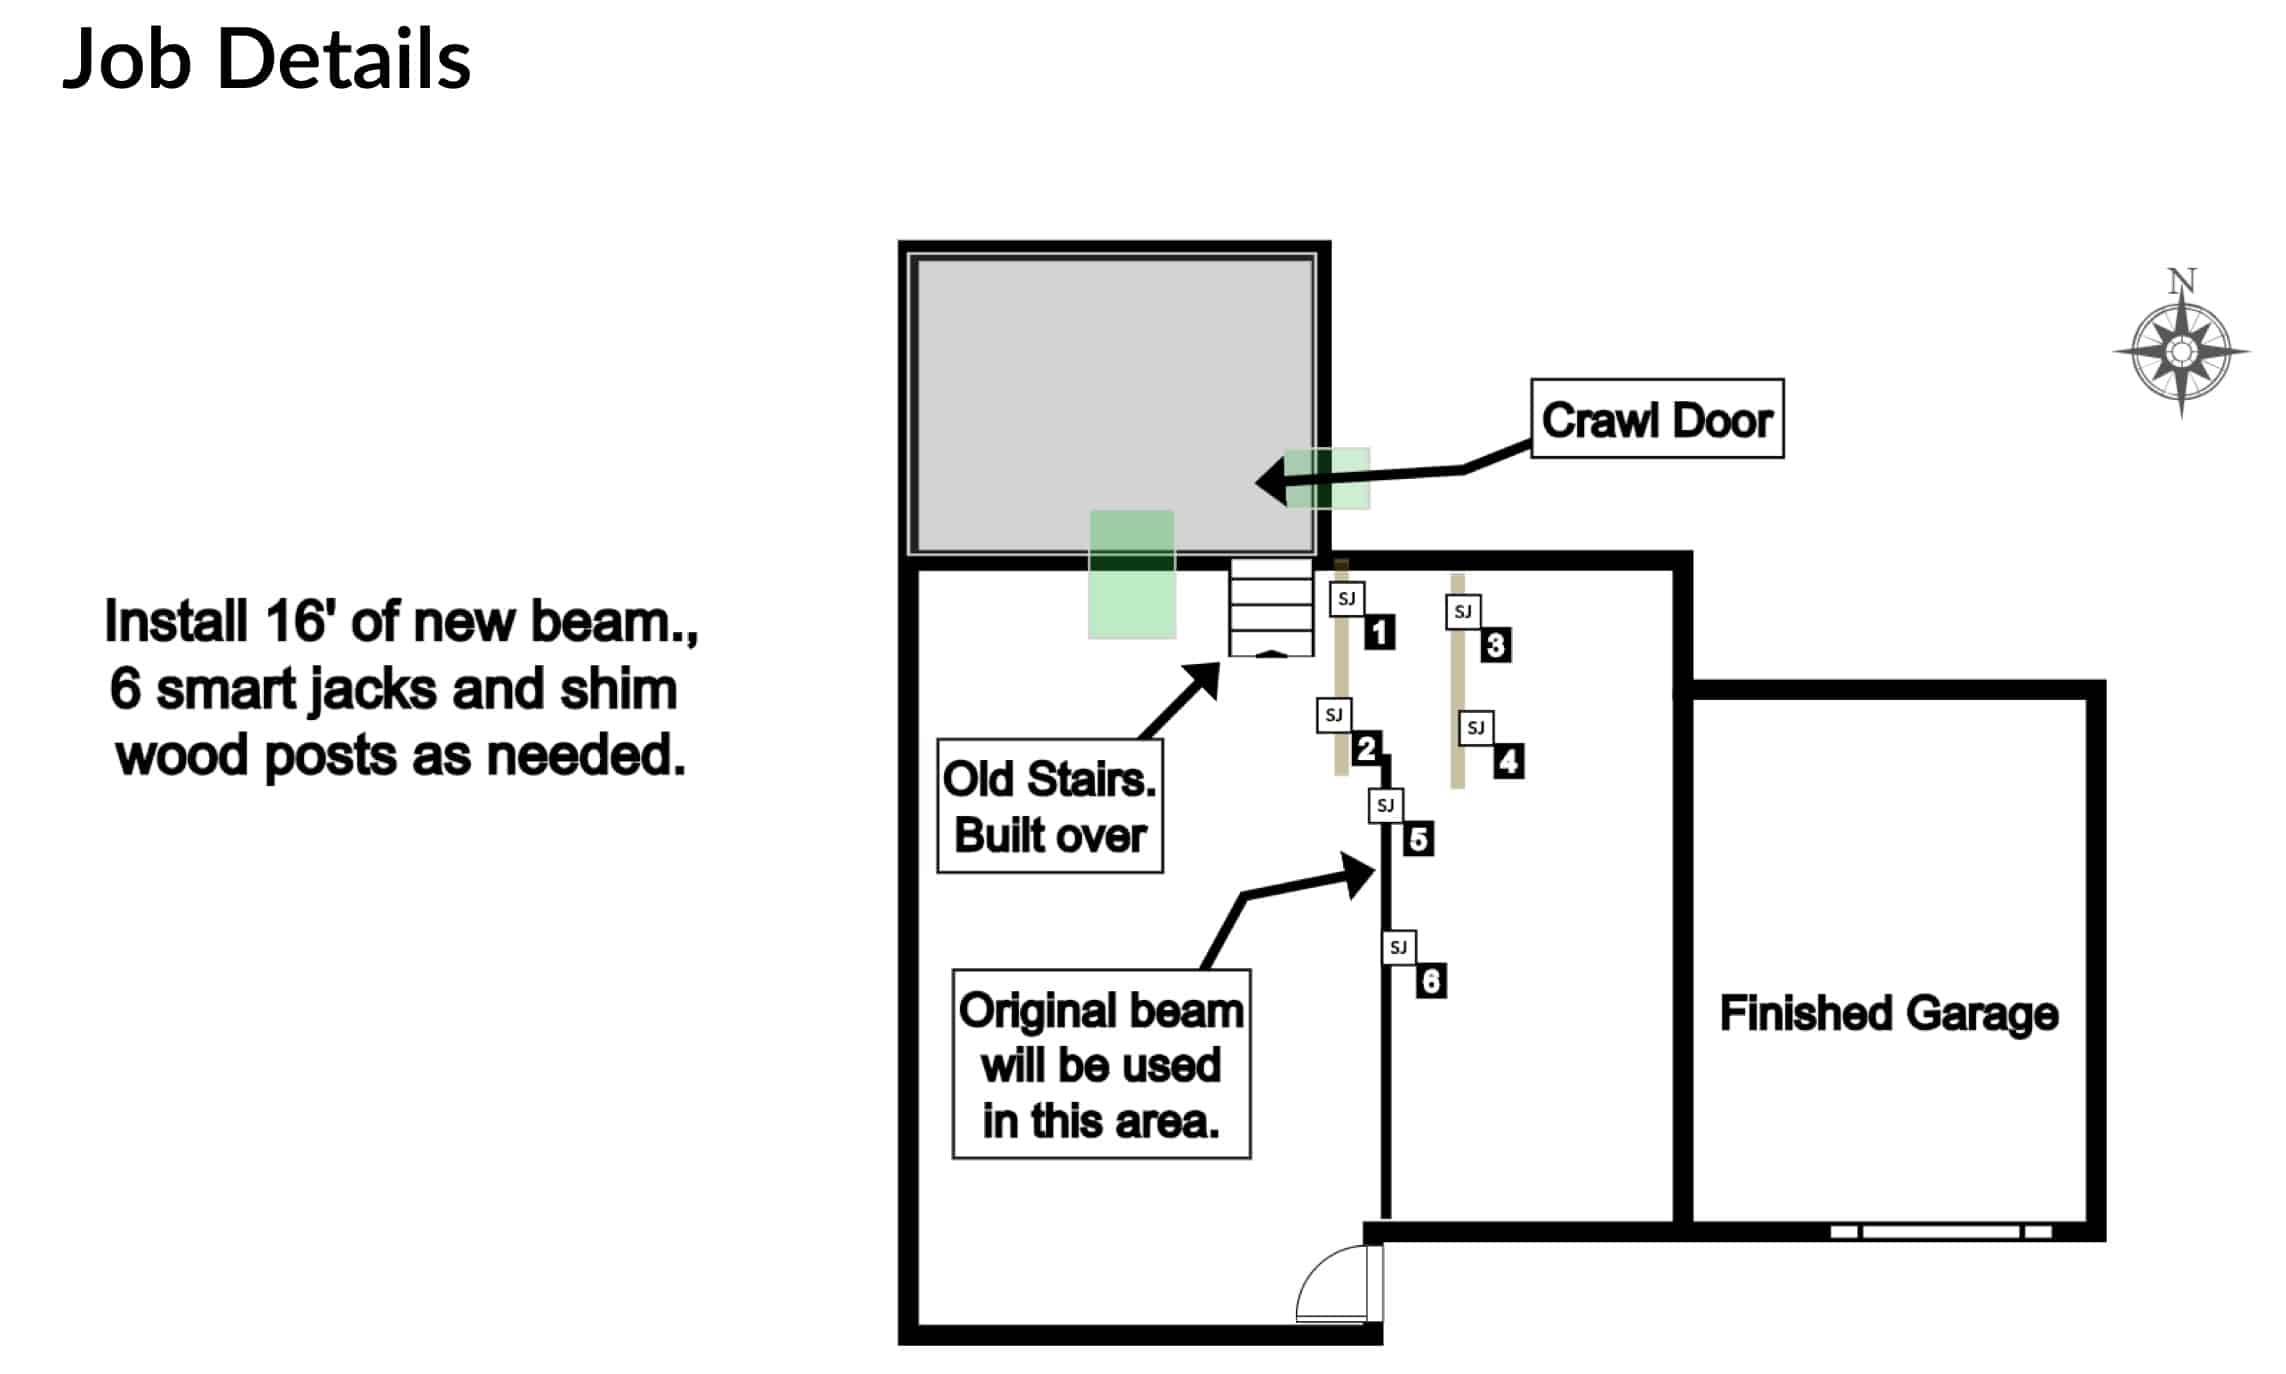 Plan for reinforcing foundation